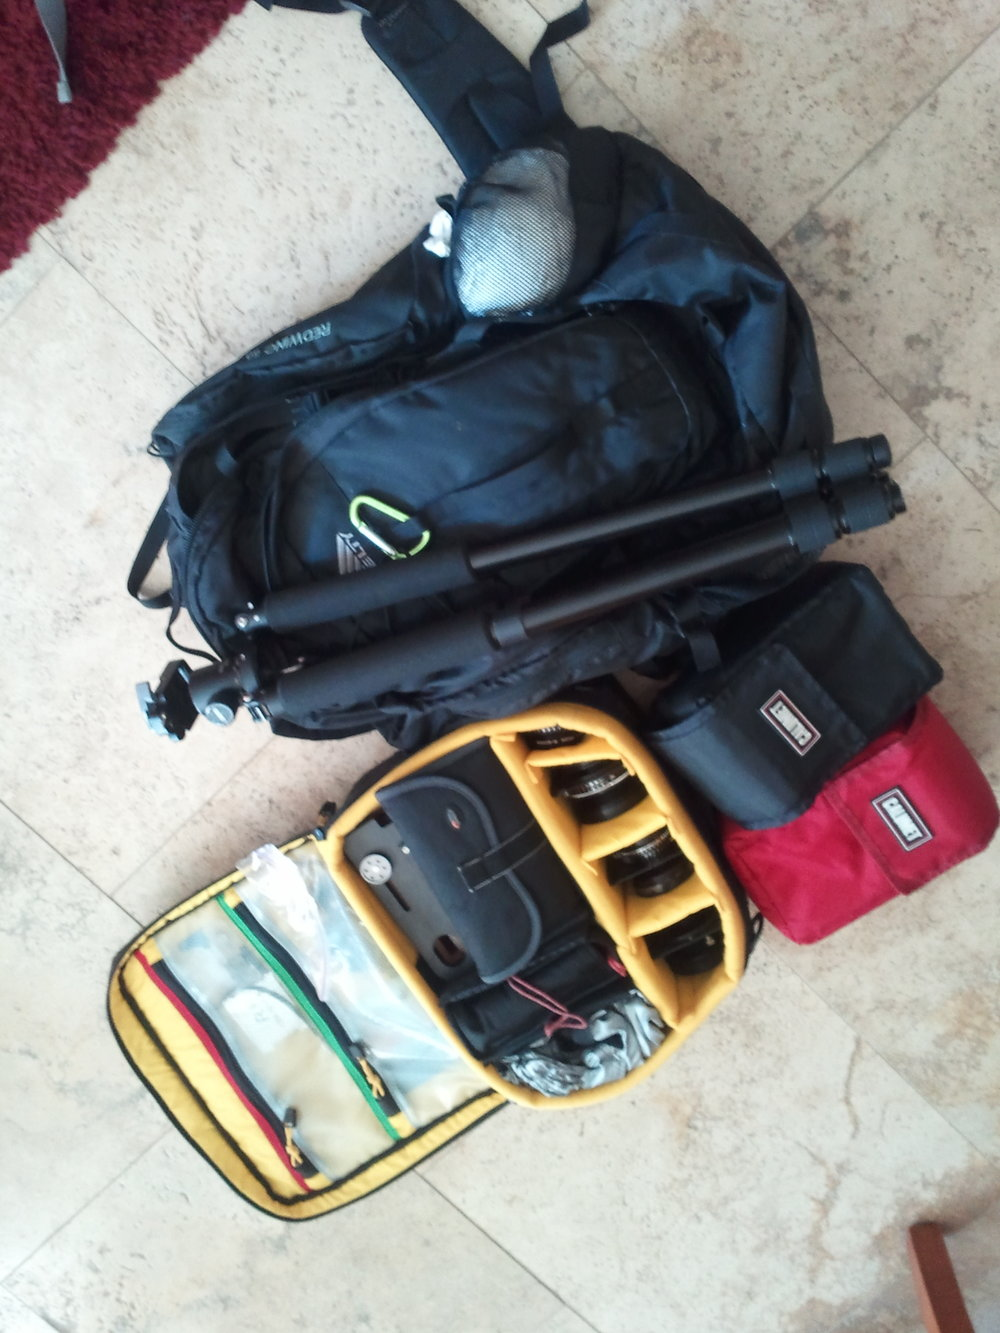 The Kelty Redwing 5100 and it's load ready for a trip!